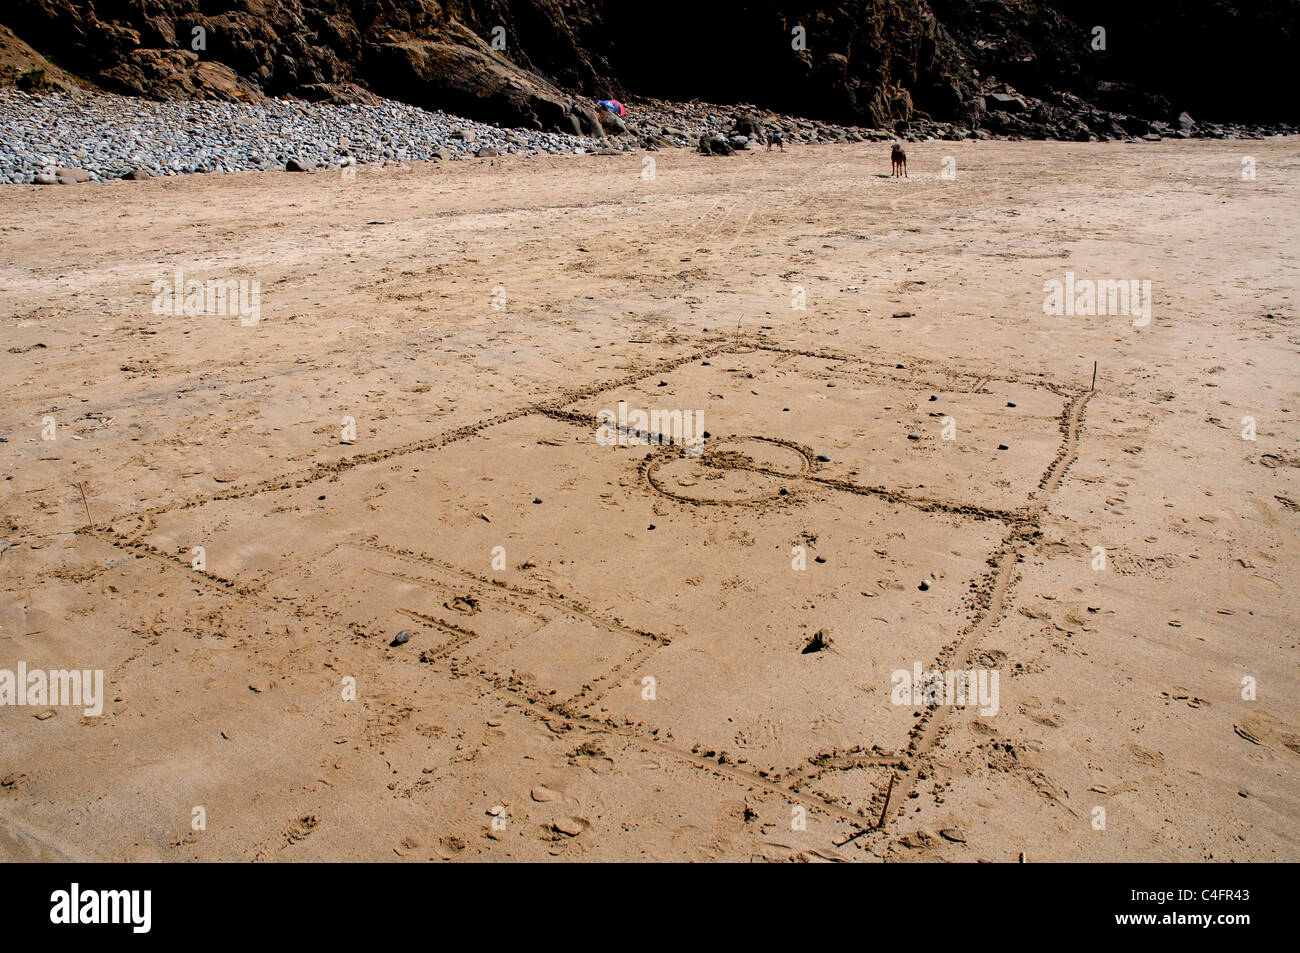 A miniature football pitch marked out on a beach - Stock Image